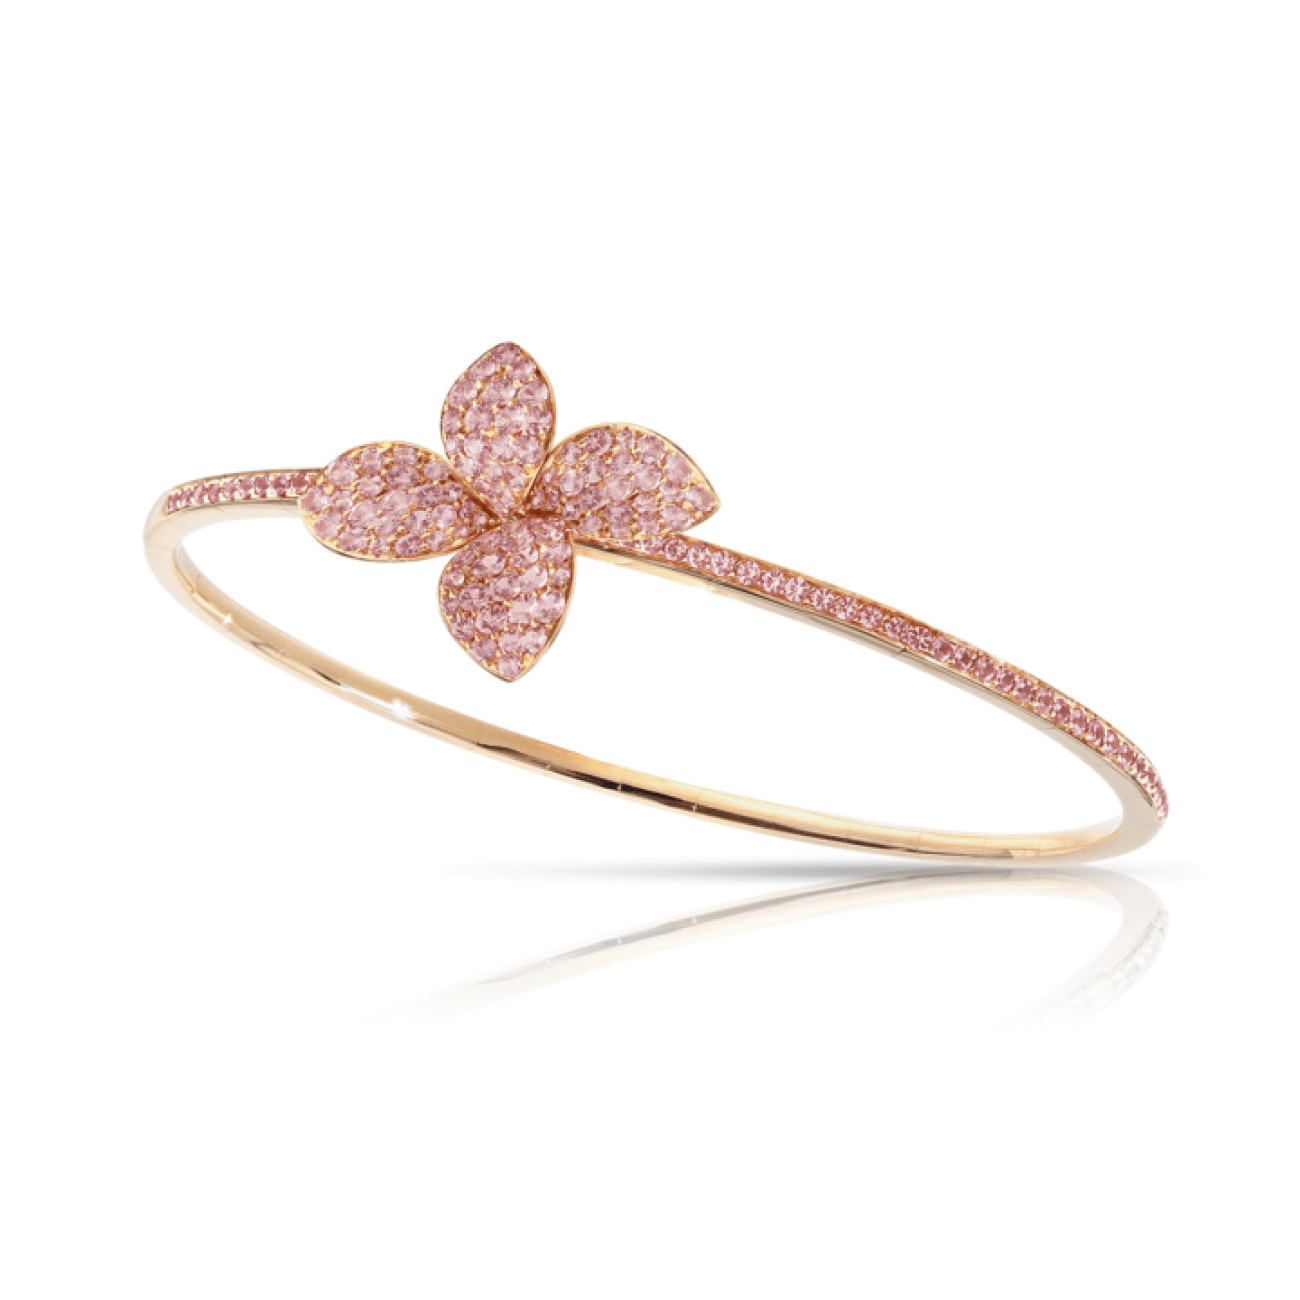 Pasquale Bruni Jewelry - 18k Rose Gold Petit Garden Bracelet with Pink Sapphires | Manfredi Jewels